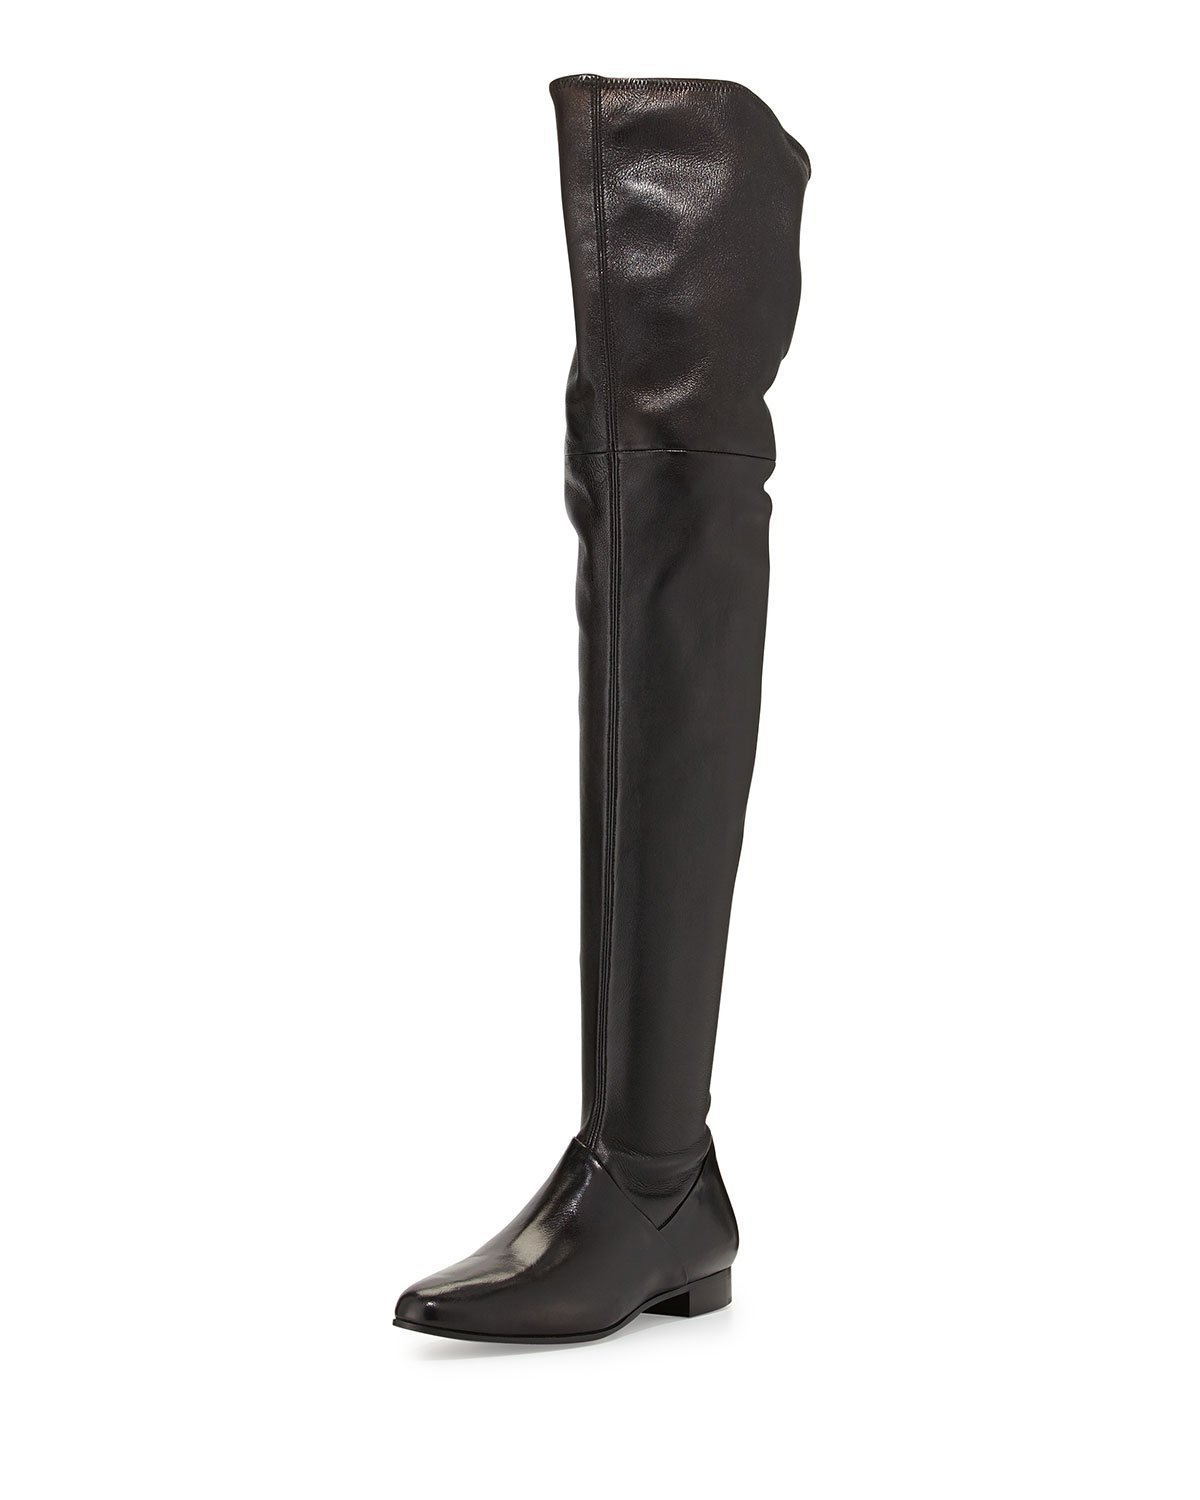 Wed2019 Gray Black Square With Flat Bottom Thigh Ma'am Winter Increase Down Circle Head Short Zipper Overknee Boots